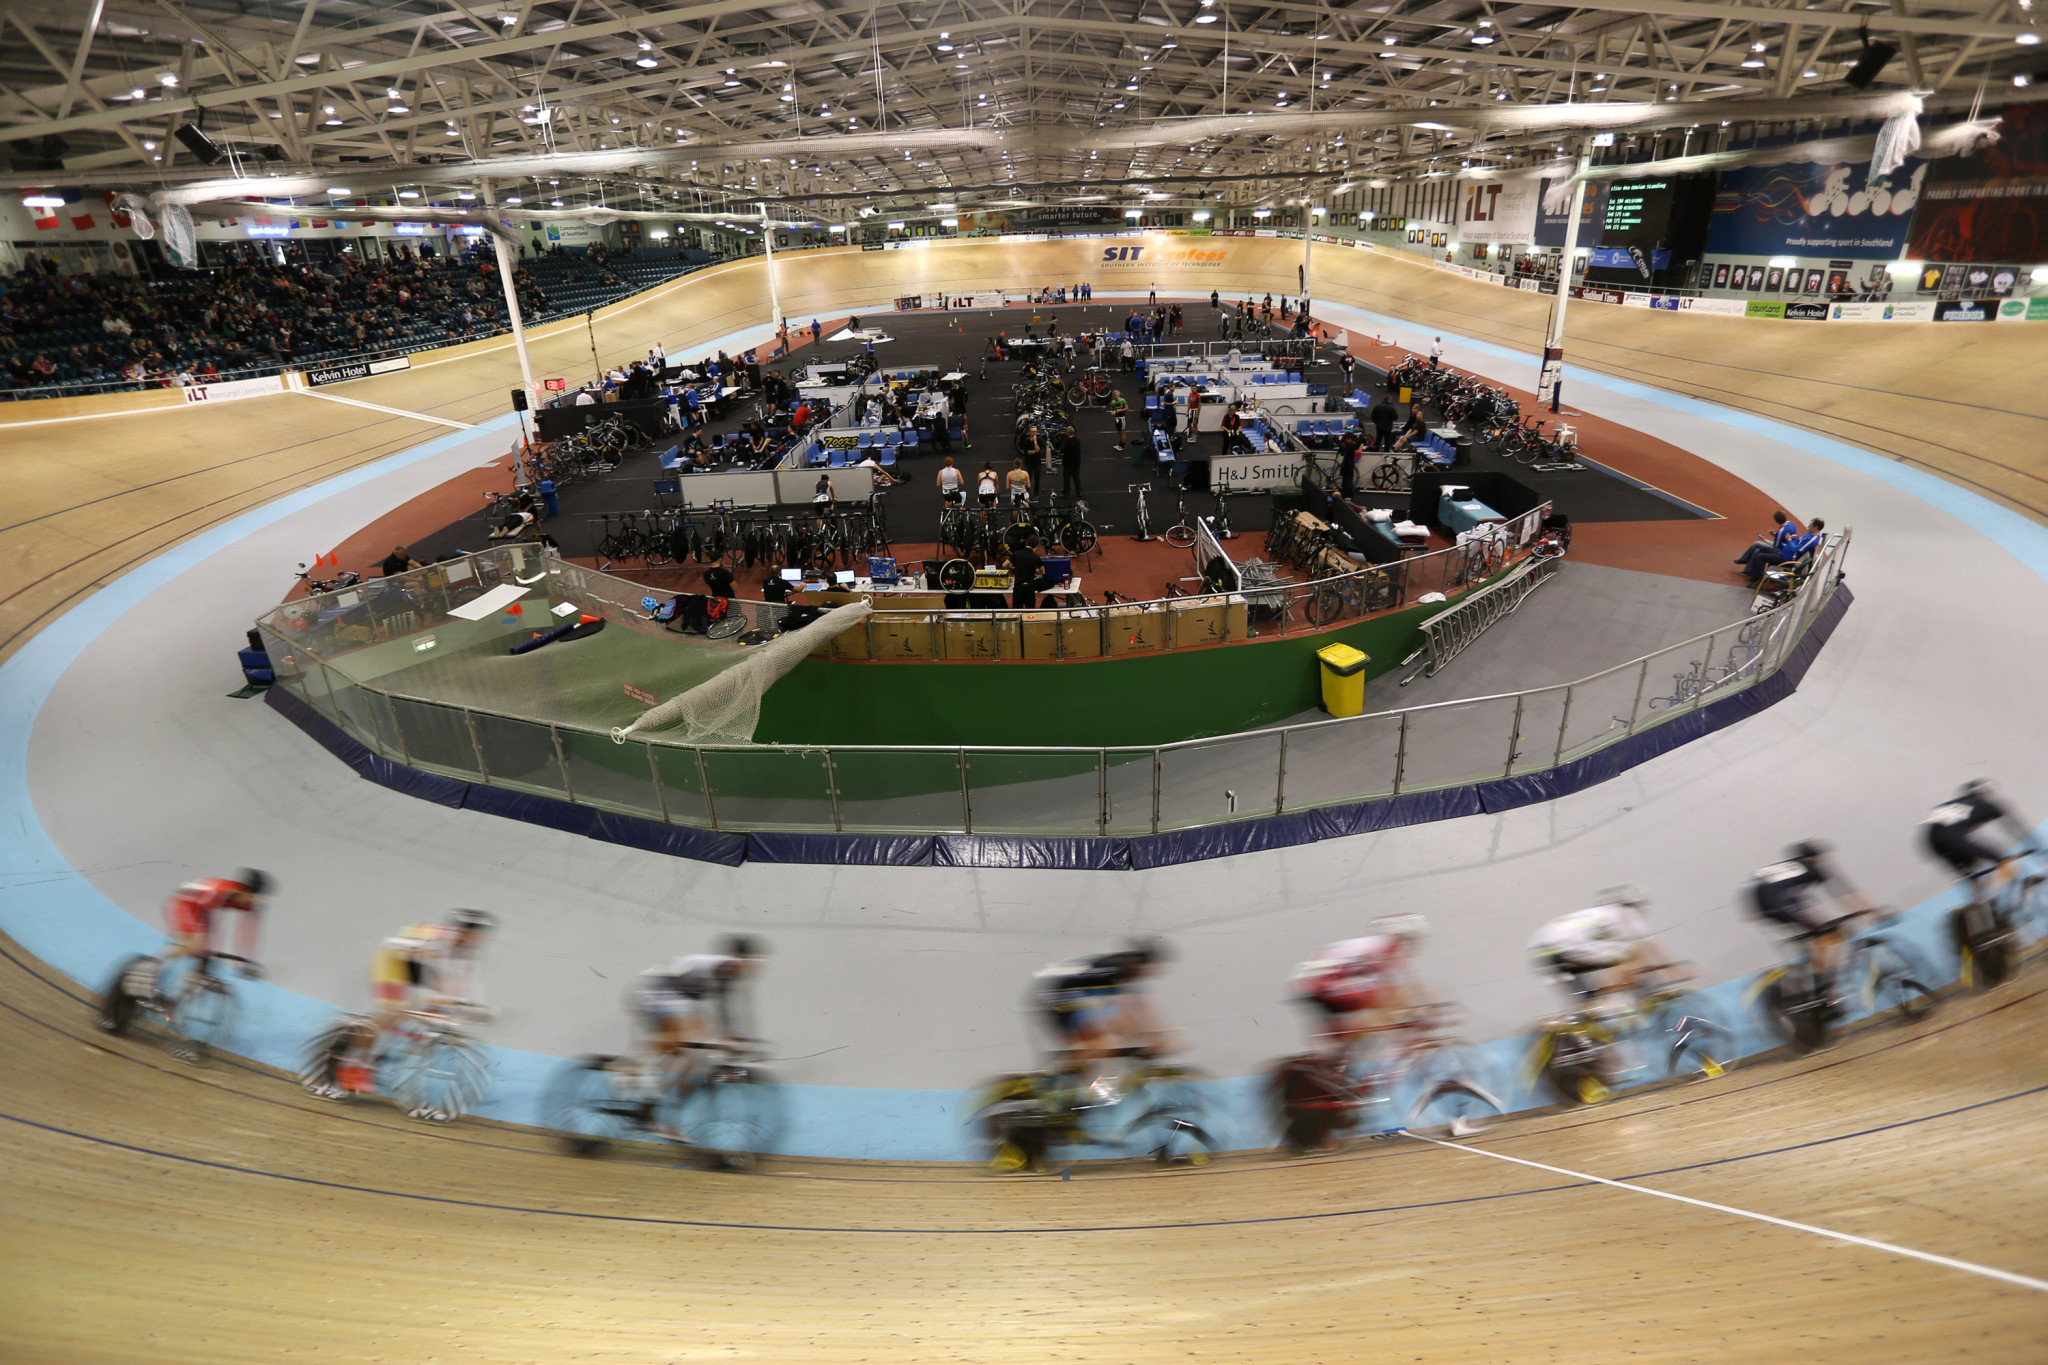 Invercargill to host 2020 Oceania Track Cycling Championships